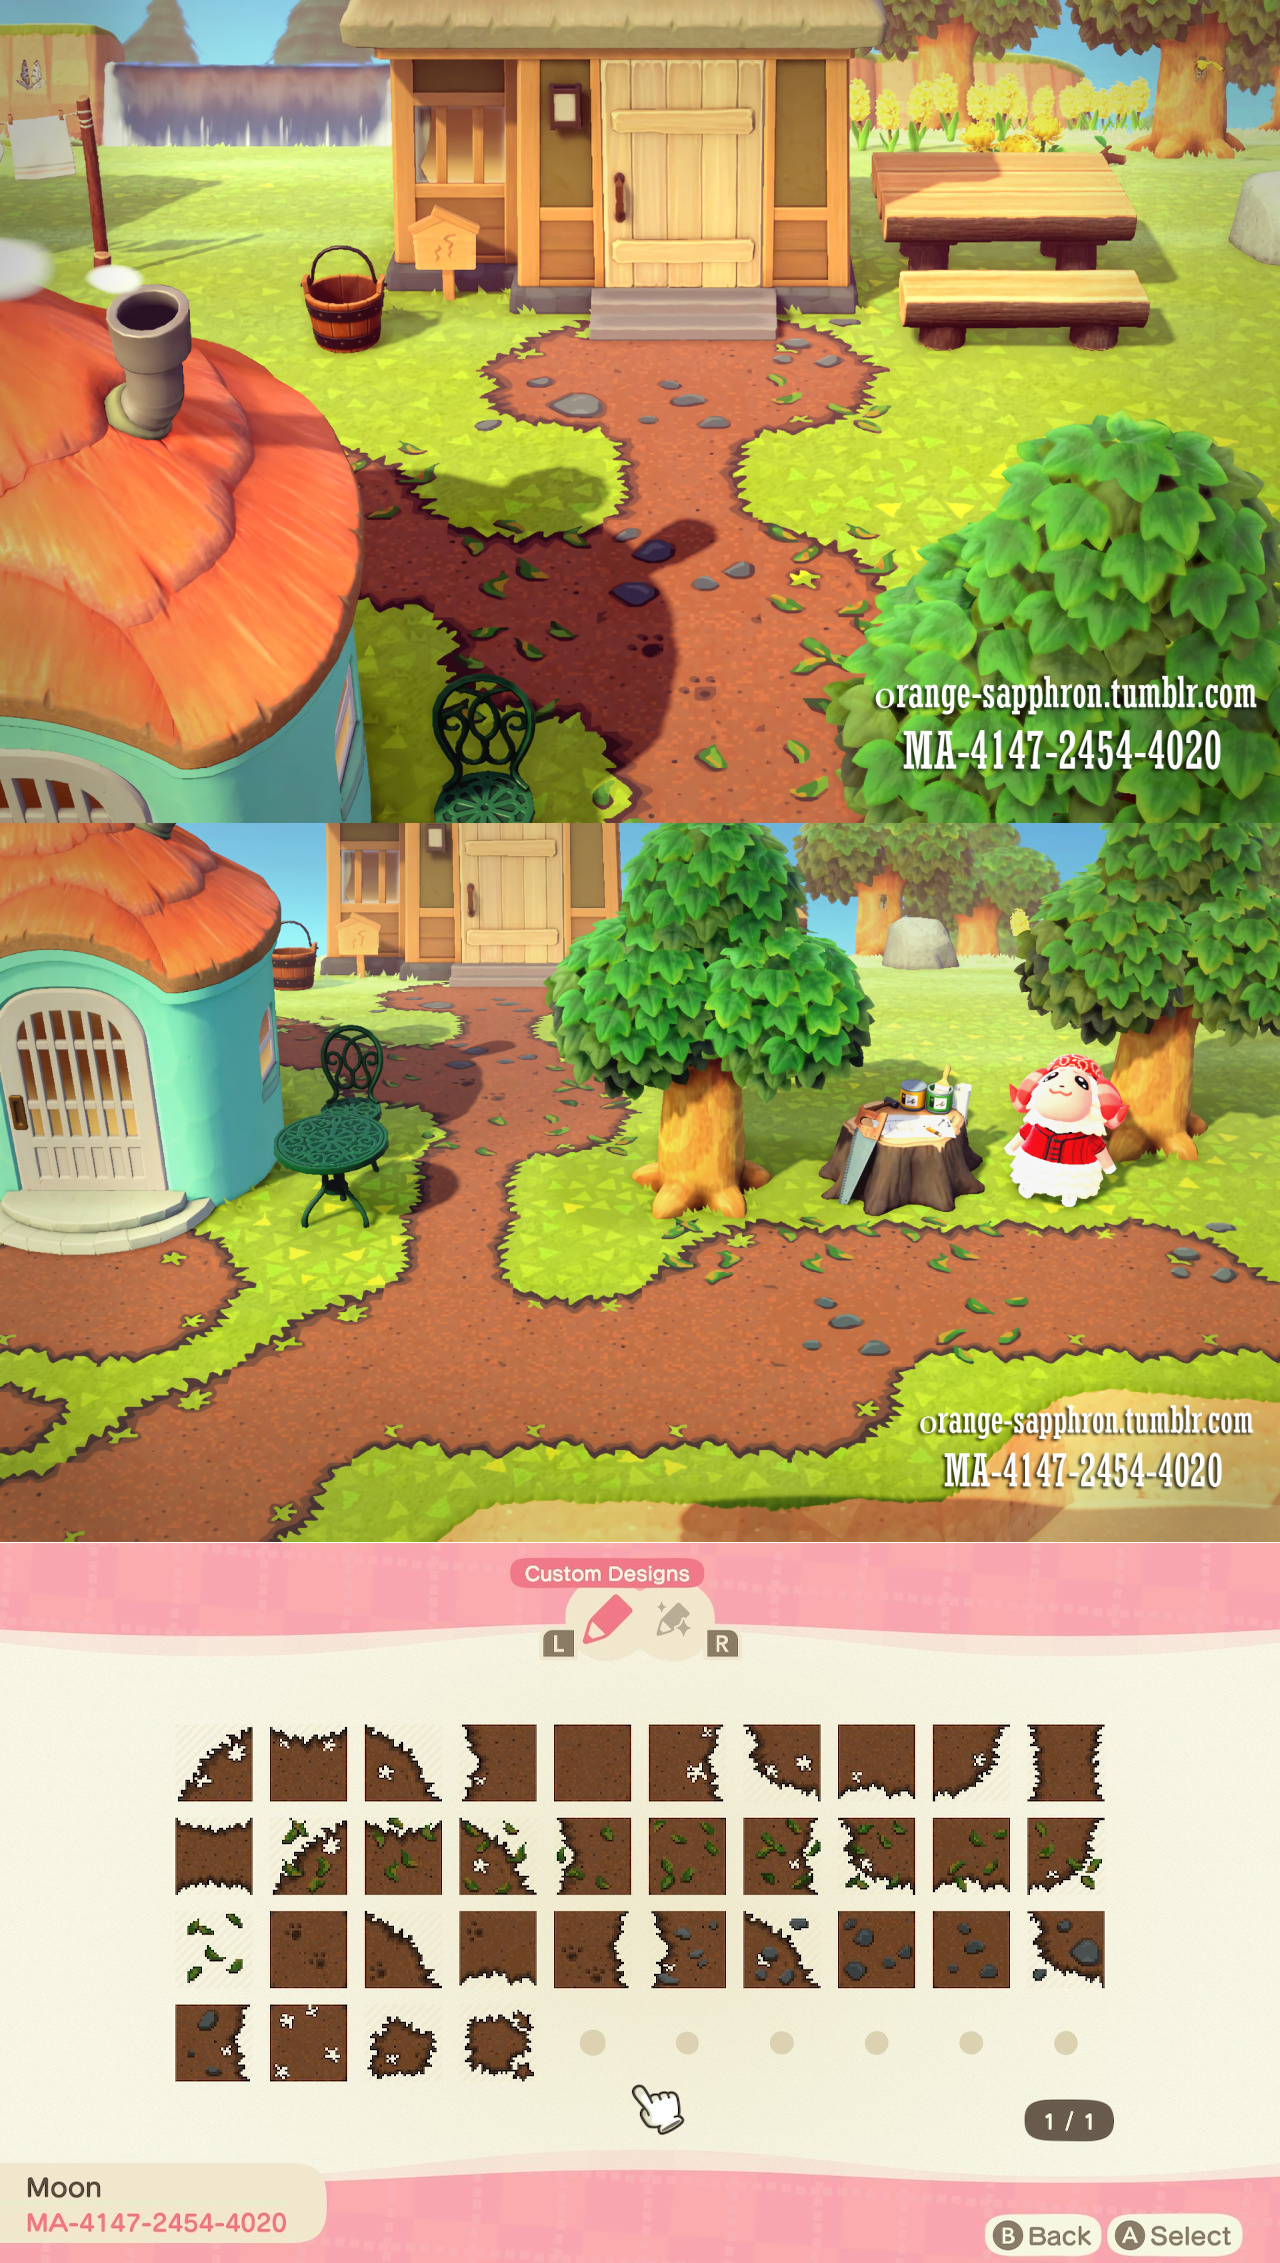 Dirt Paths With Rocks And Leaves Animal Crossing Animal Crossing 3ds Animal Crossing Guide